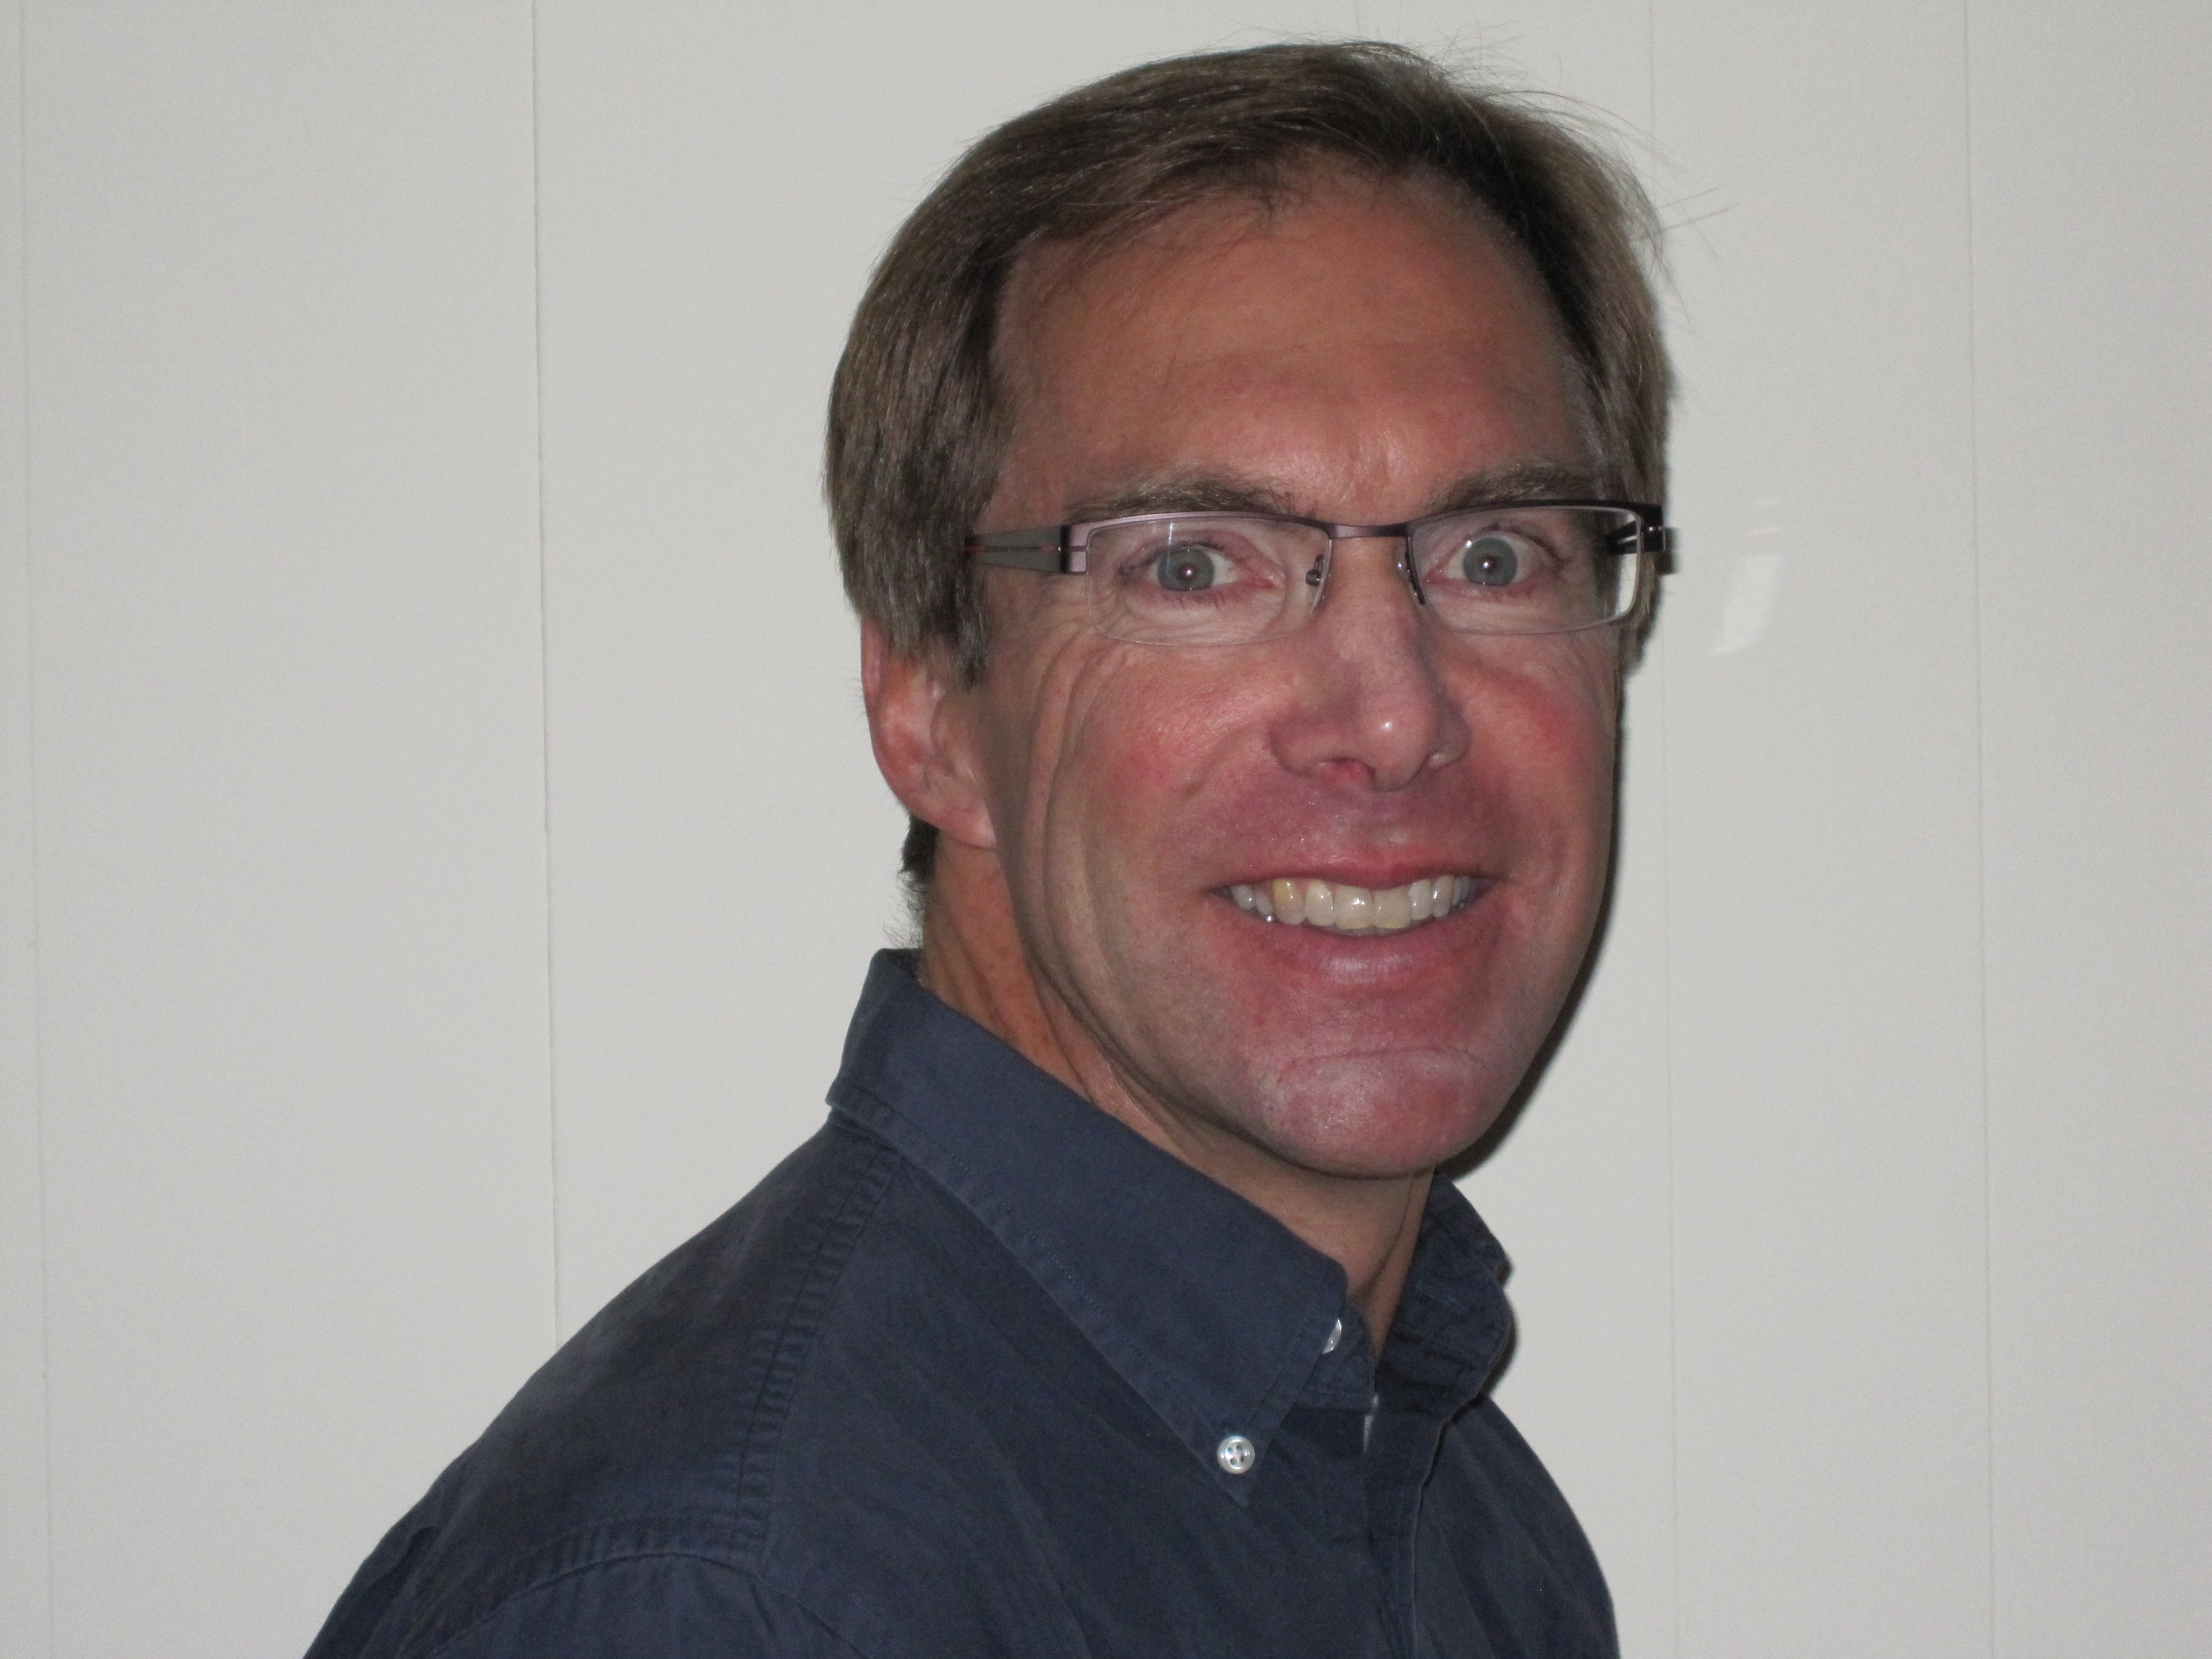 Global Prepaid Executive Scott Salmon Joins i2c   Business Wire